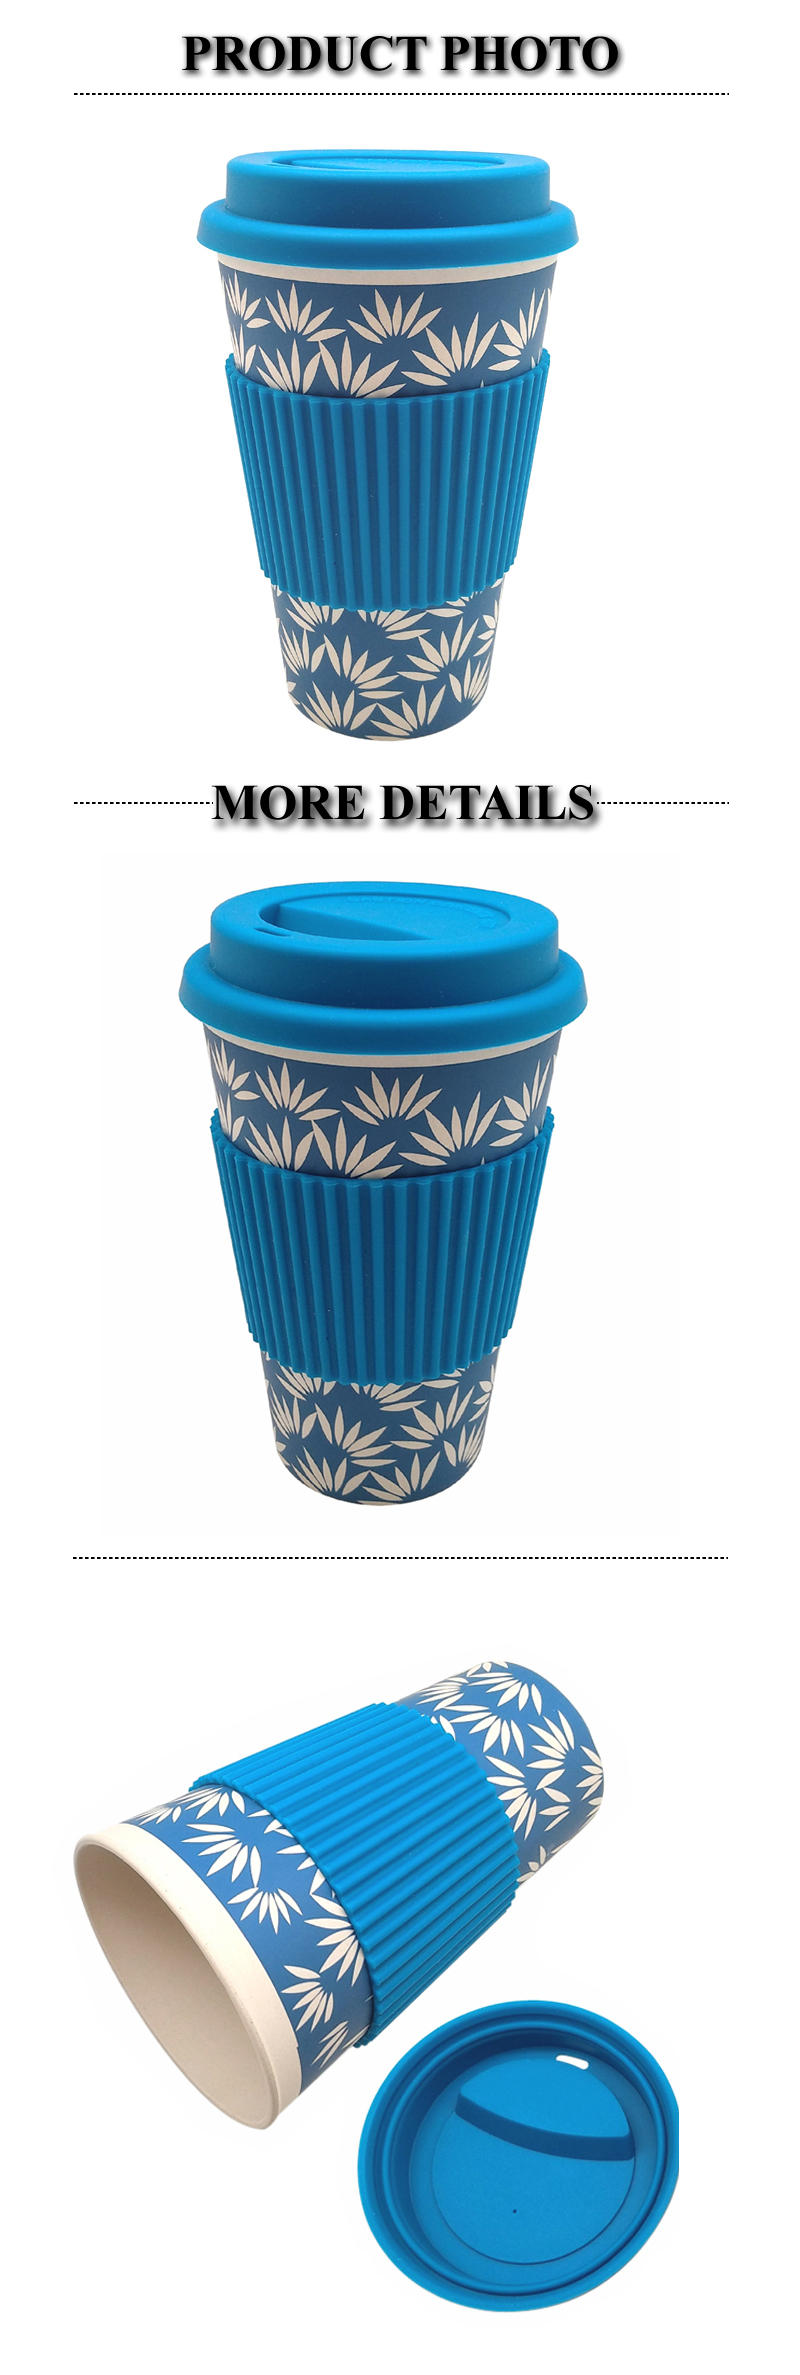 Eco-friendly 100% Biodegradable Coffee Mug with Silicone Sleeve and Lid